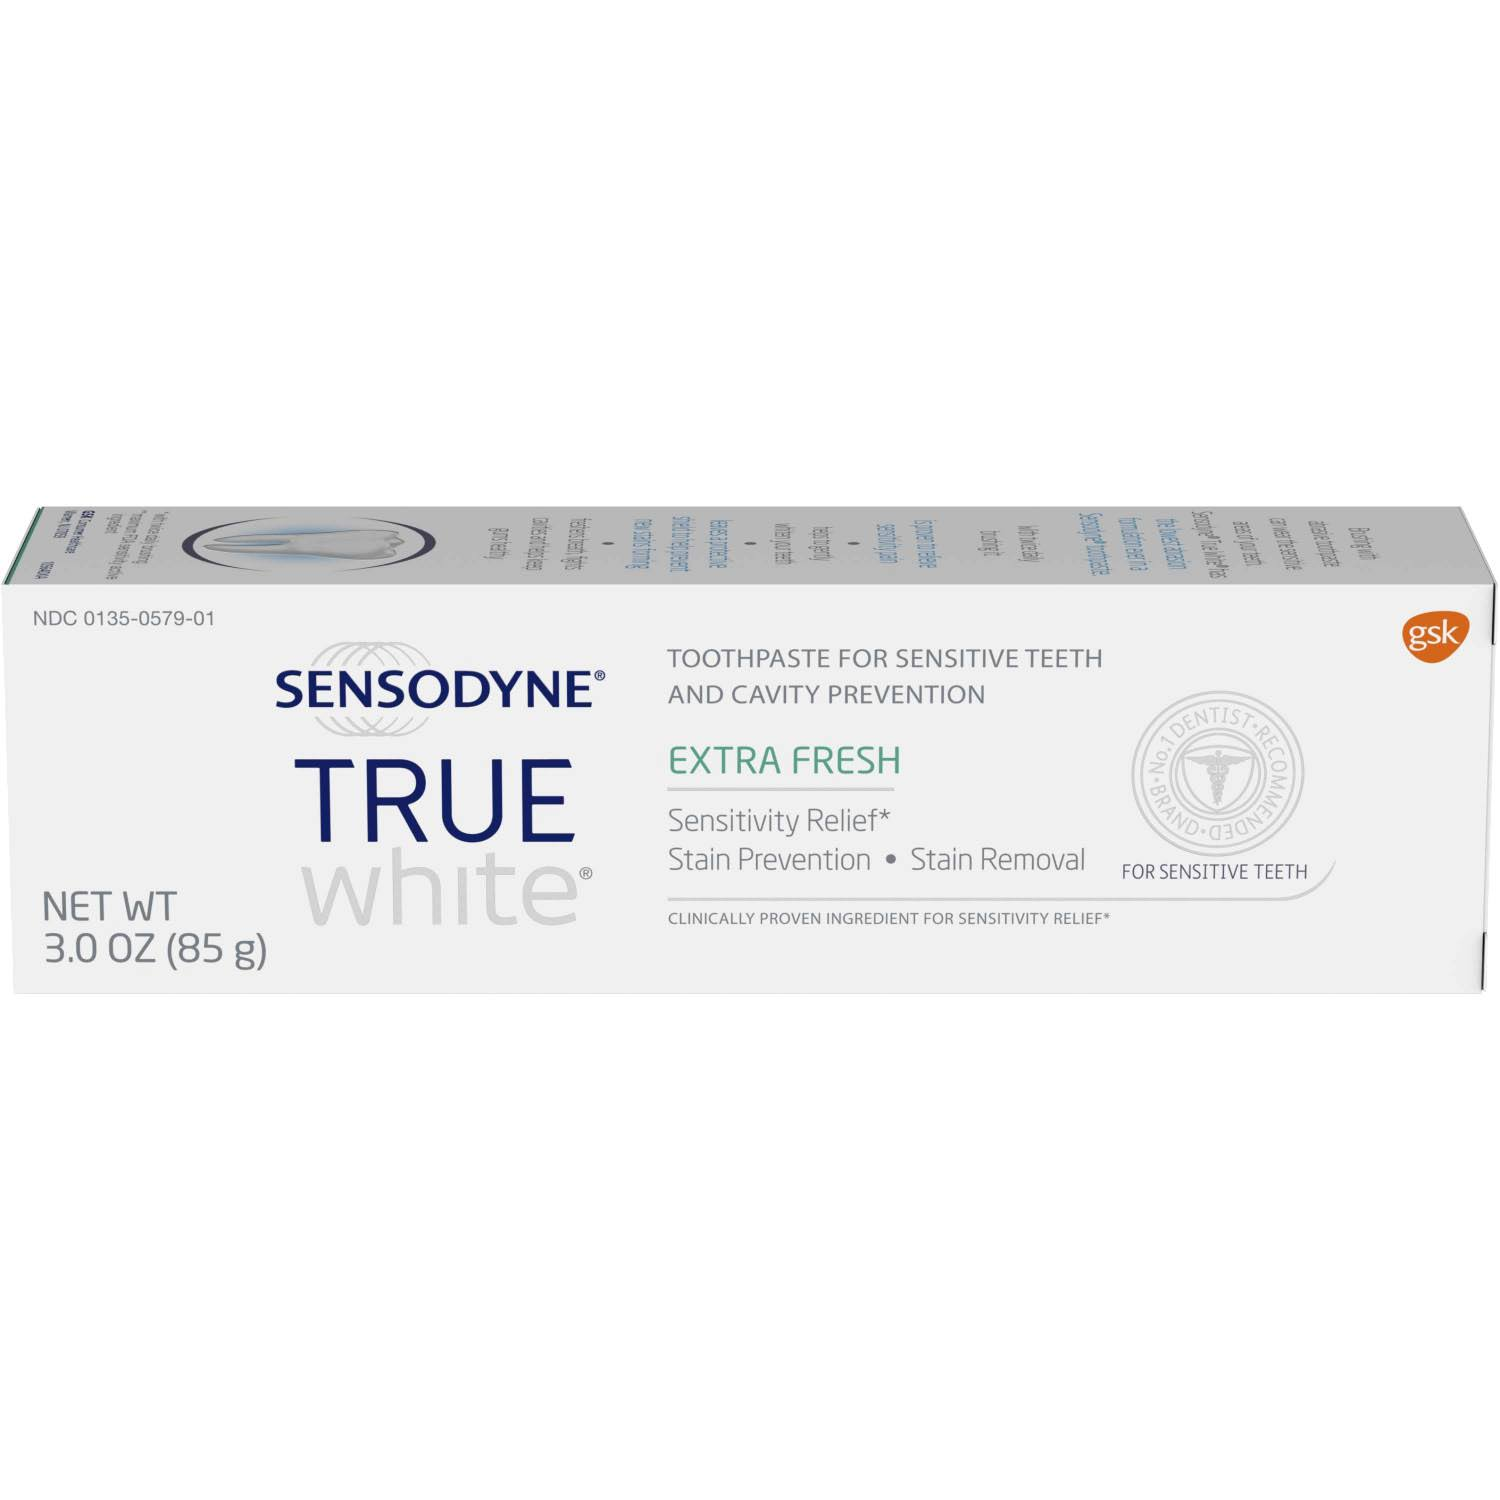 Sensodyne True White Toothpaste - 85g